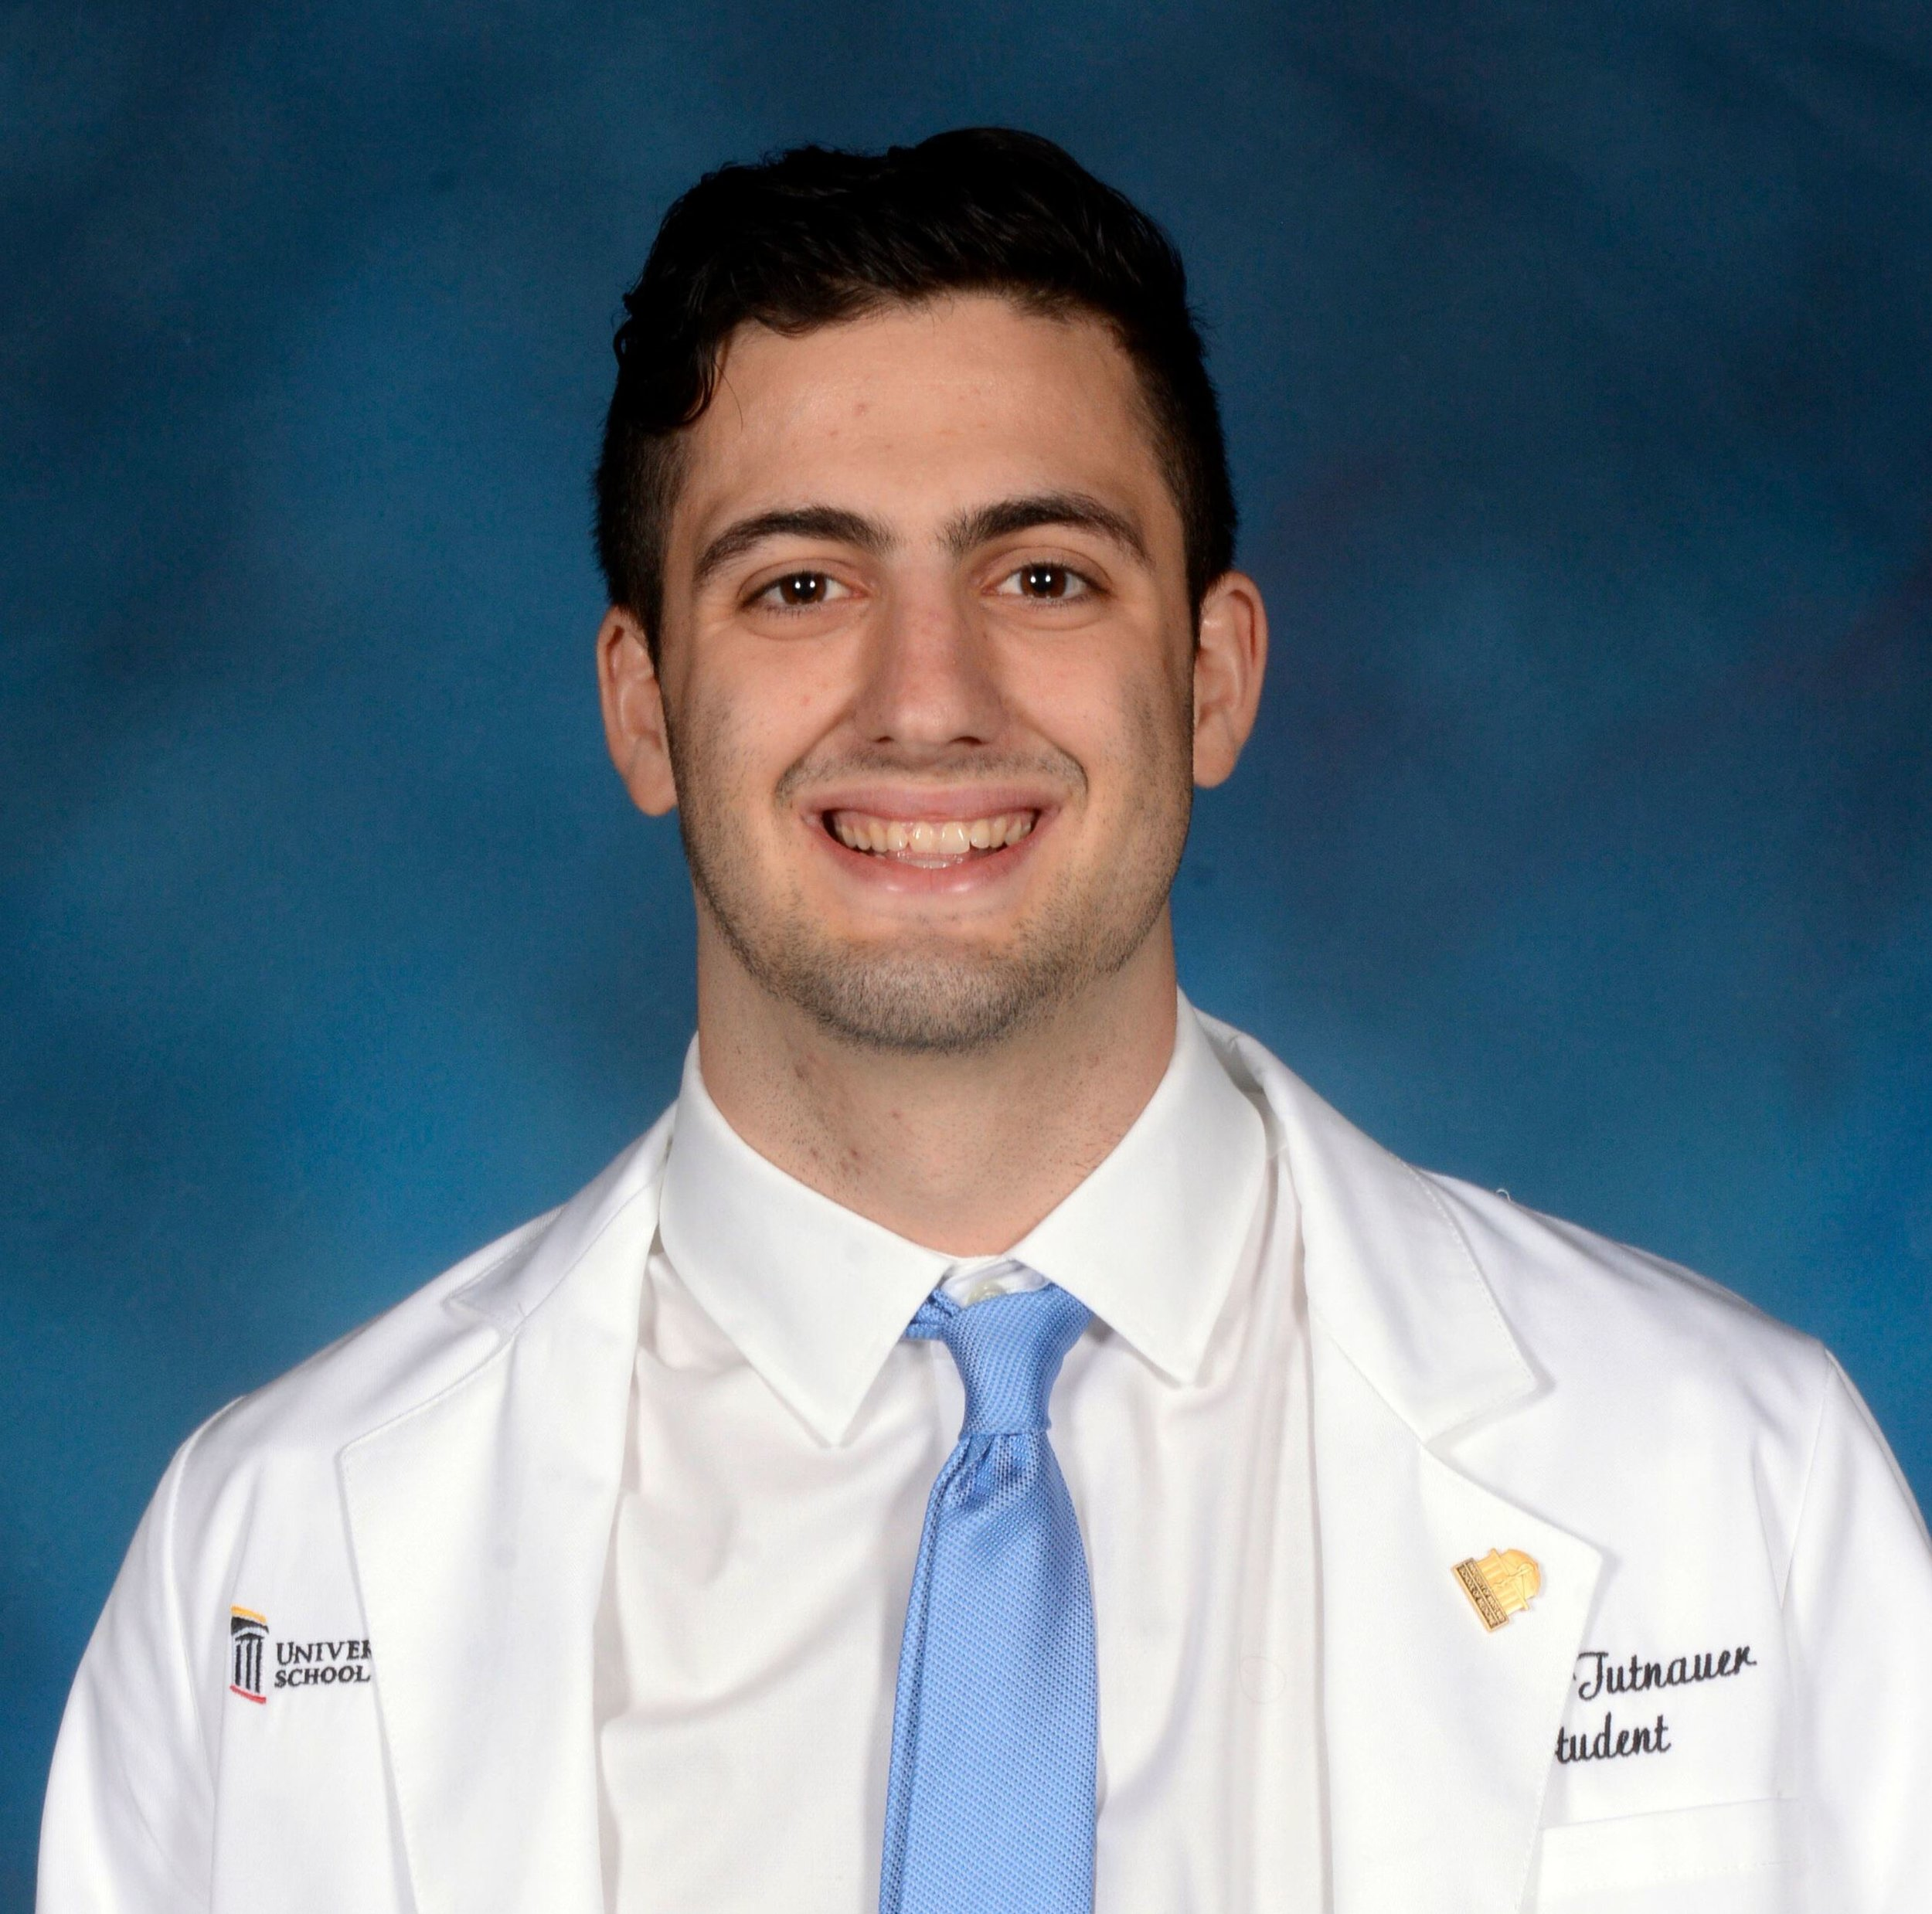 Jordan Tutnauer White Coat.jpeg